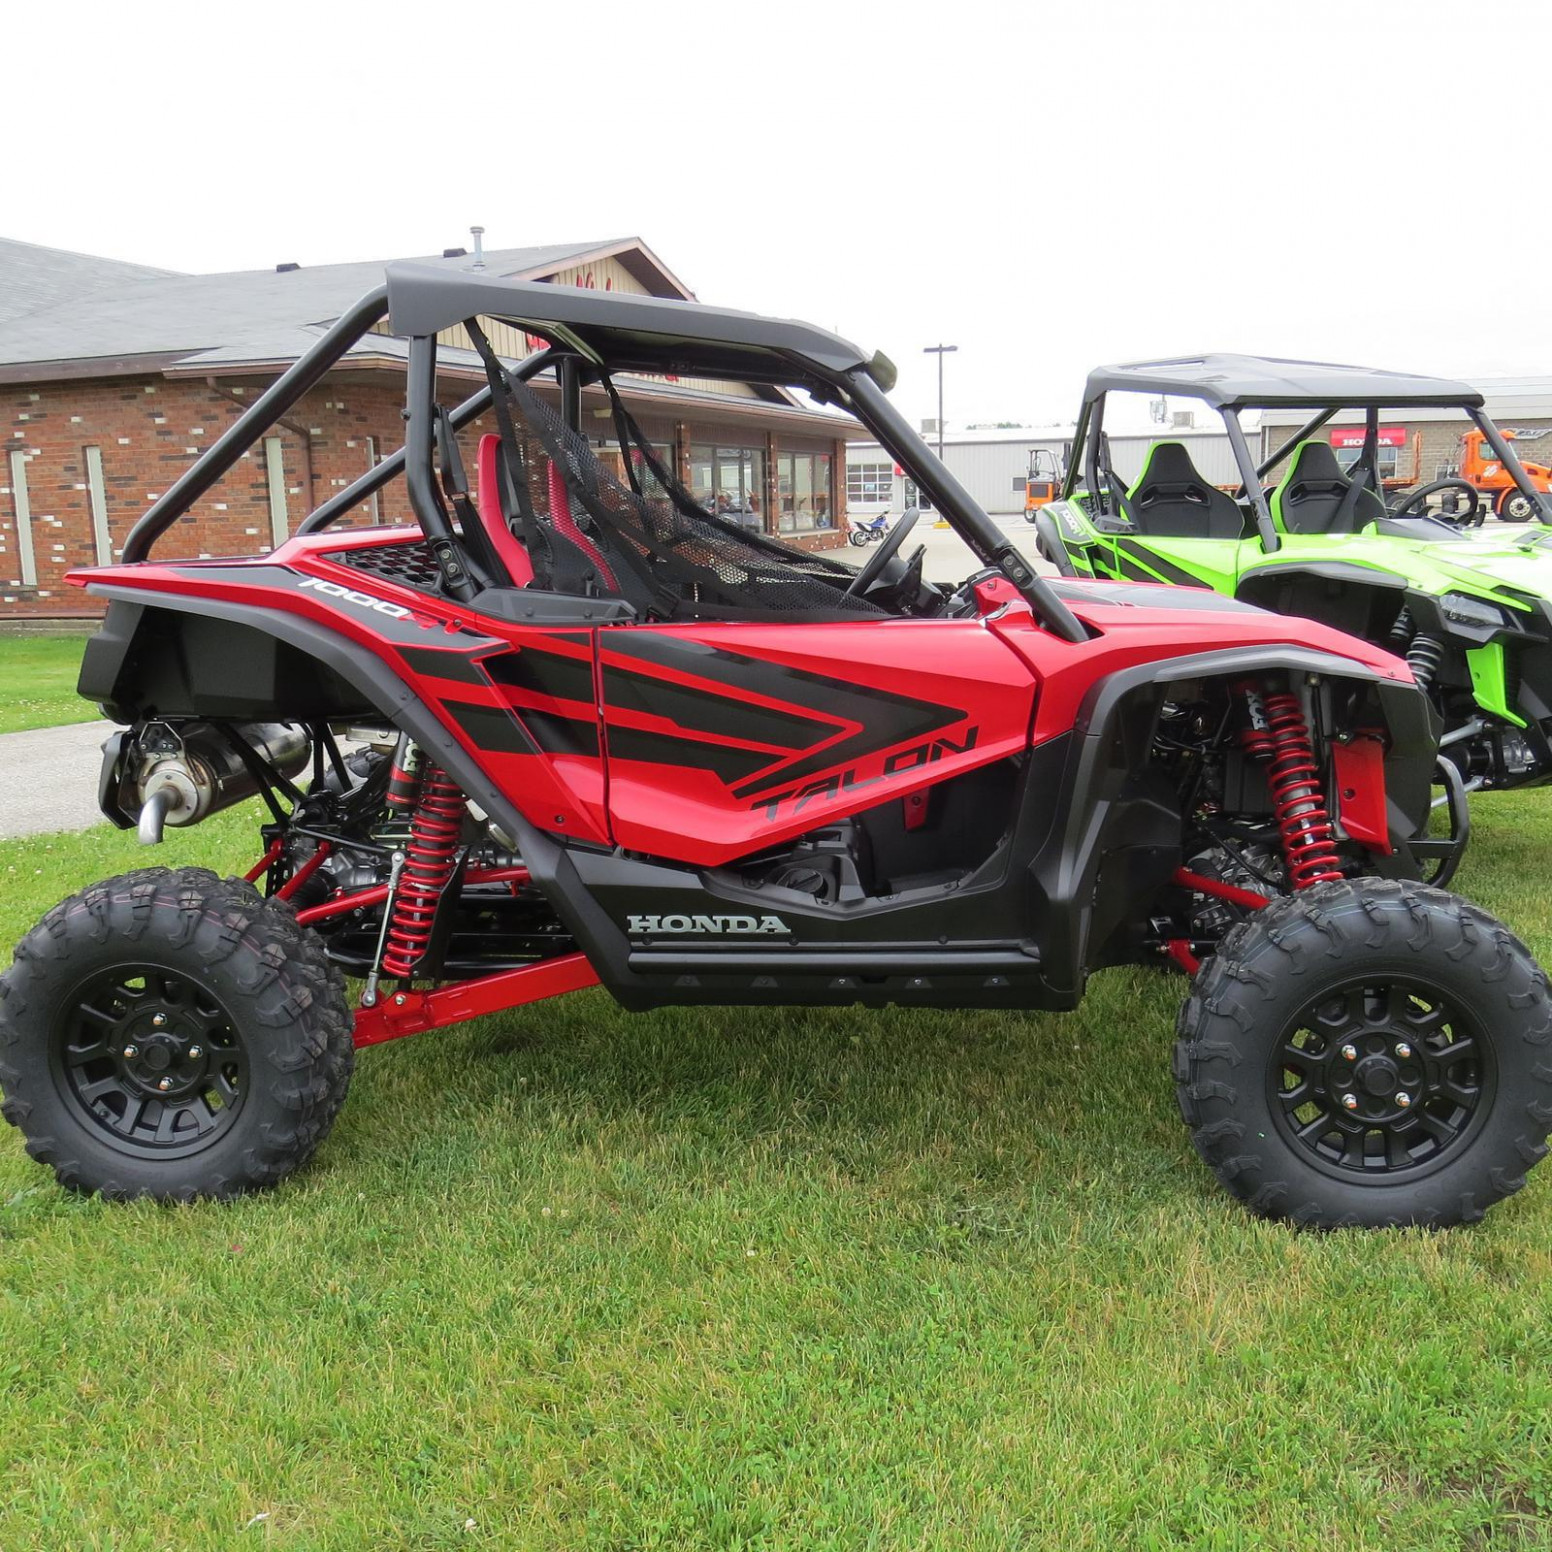 8 Honda Talon 8R DEMO - INCLUDES EXTRA 8 YEAR HONDA WARRANTY!!! - 2020 honda talon 1000r